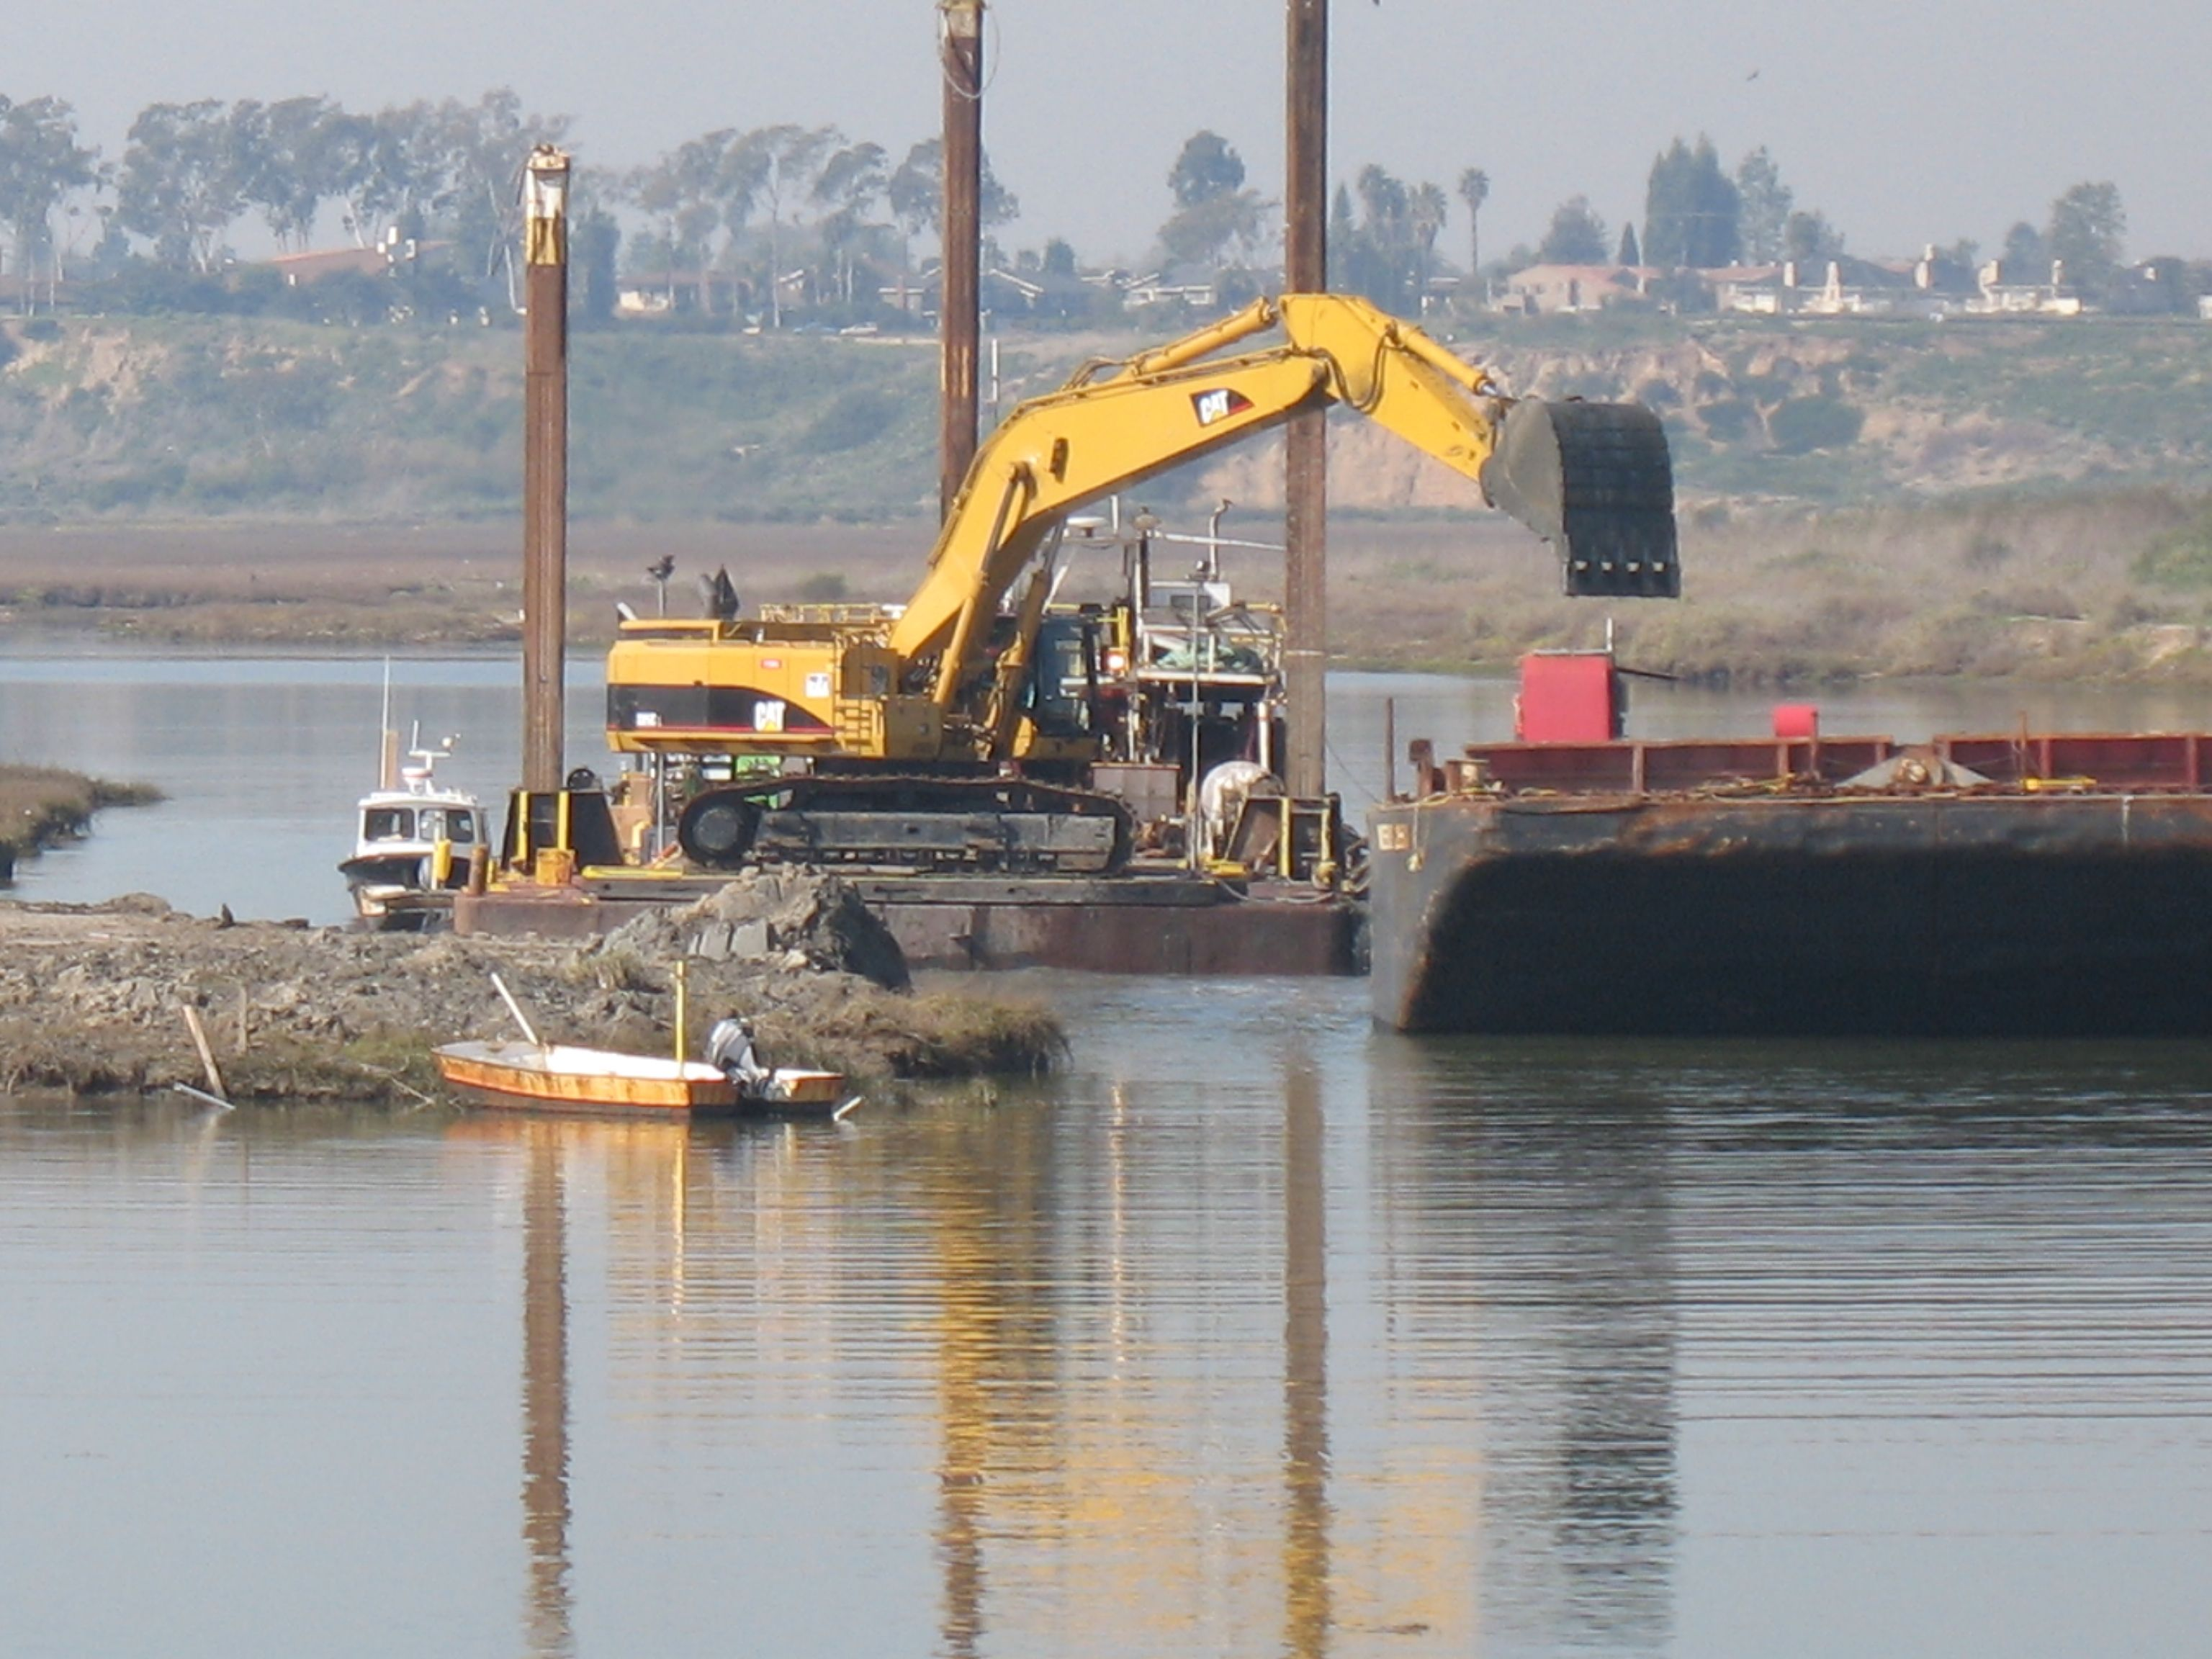 Dredging with a 385 in the Back Bay of Newport Beach, CA 2010